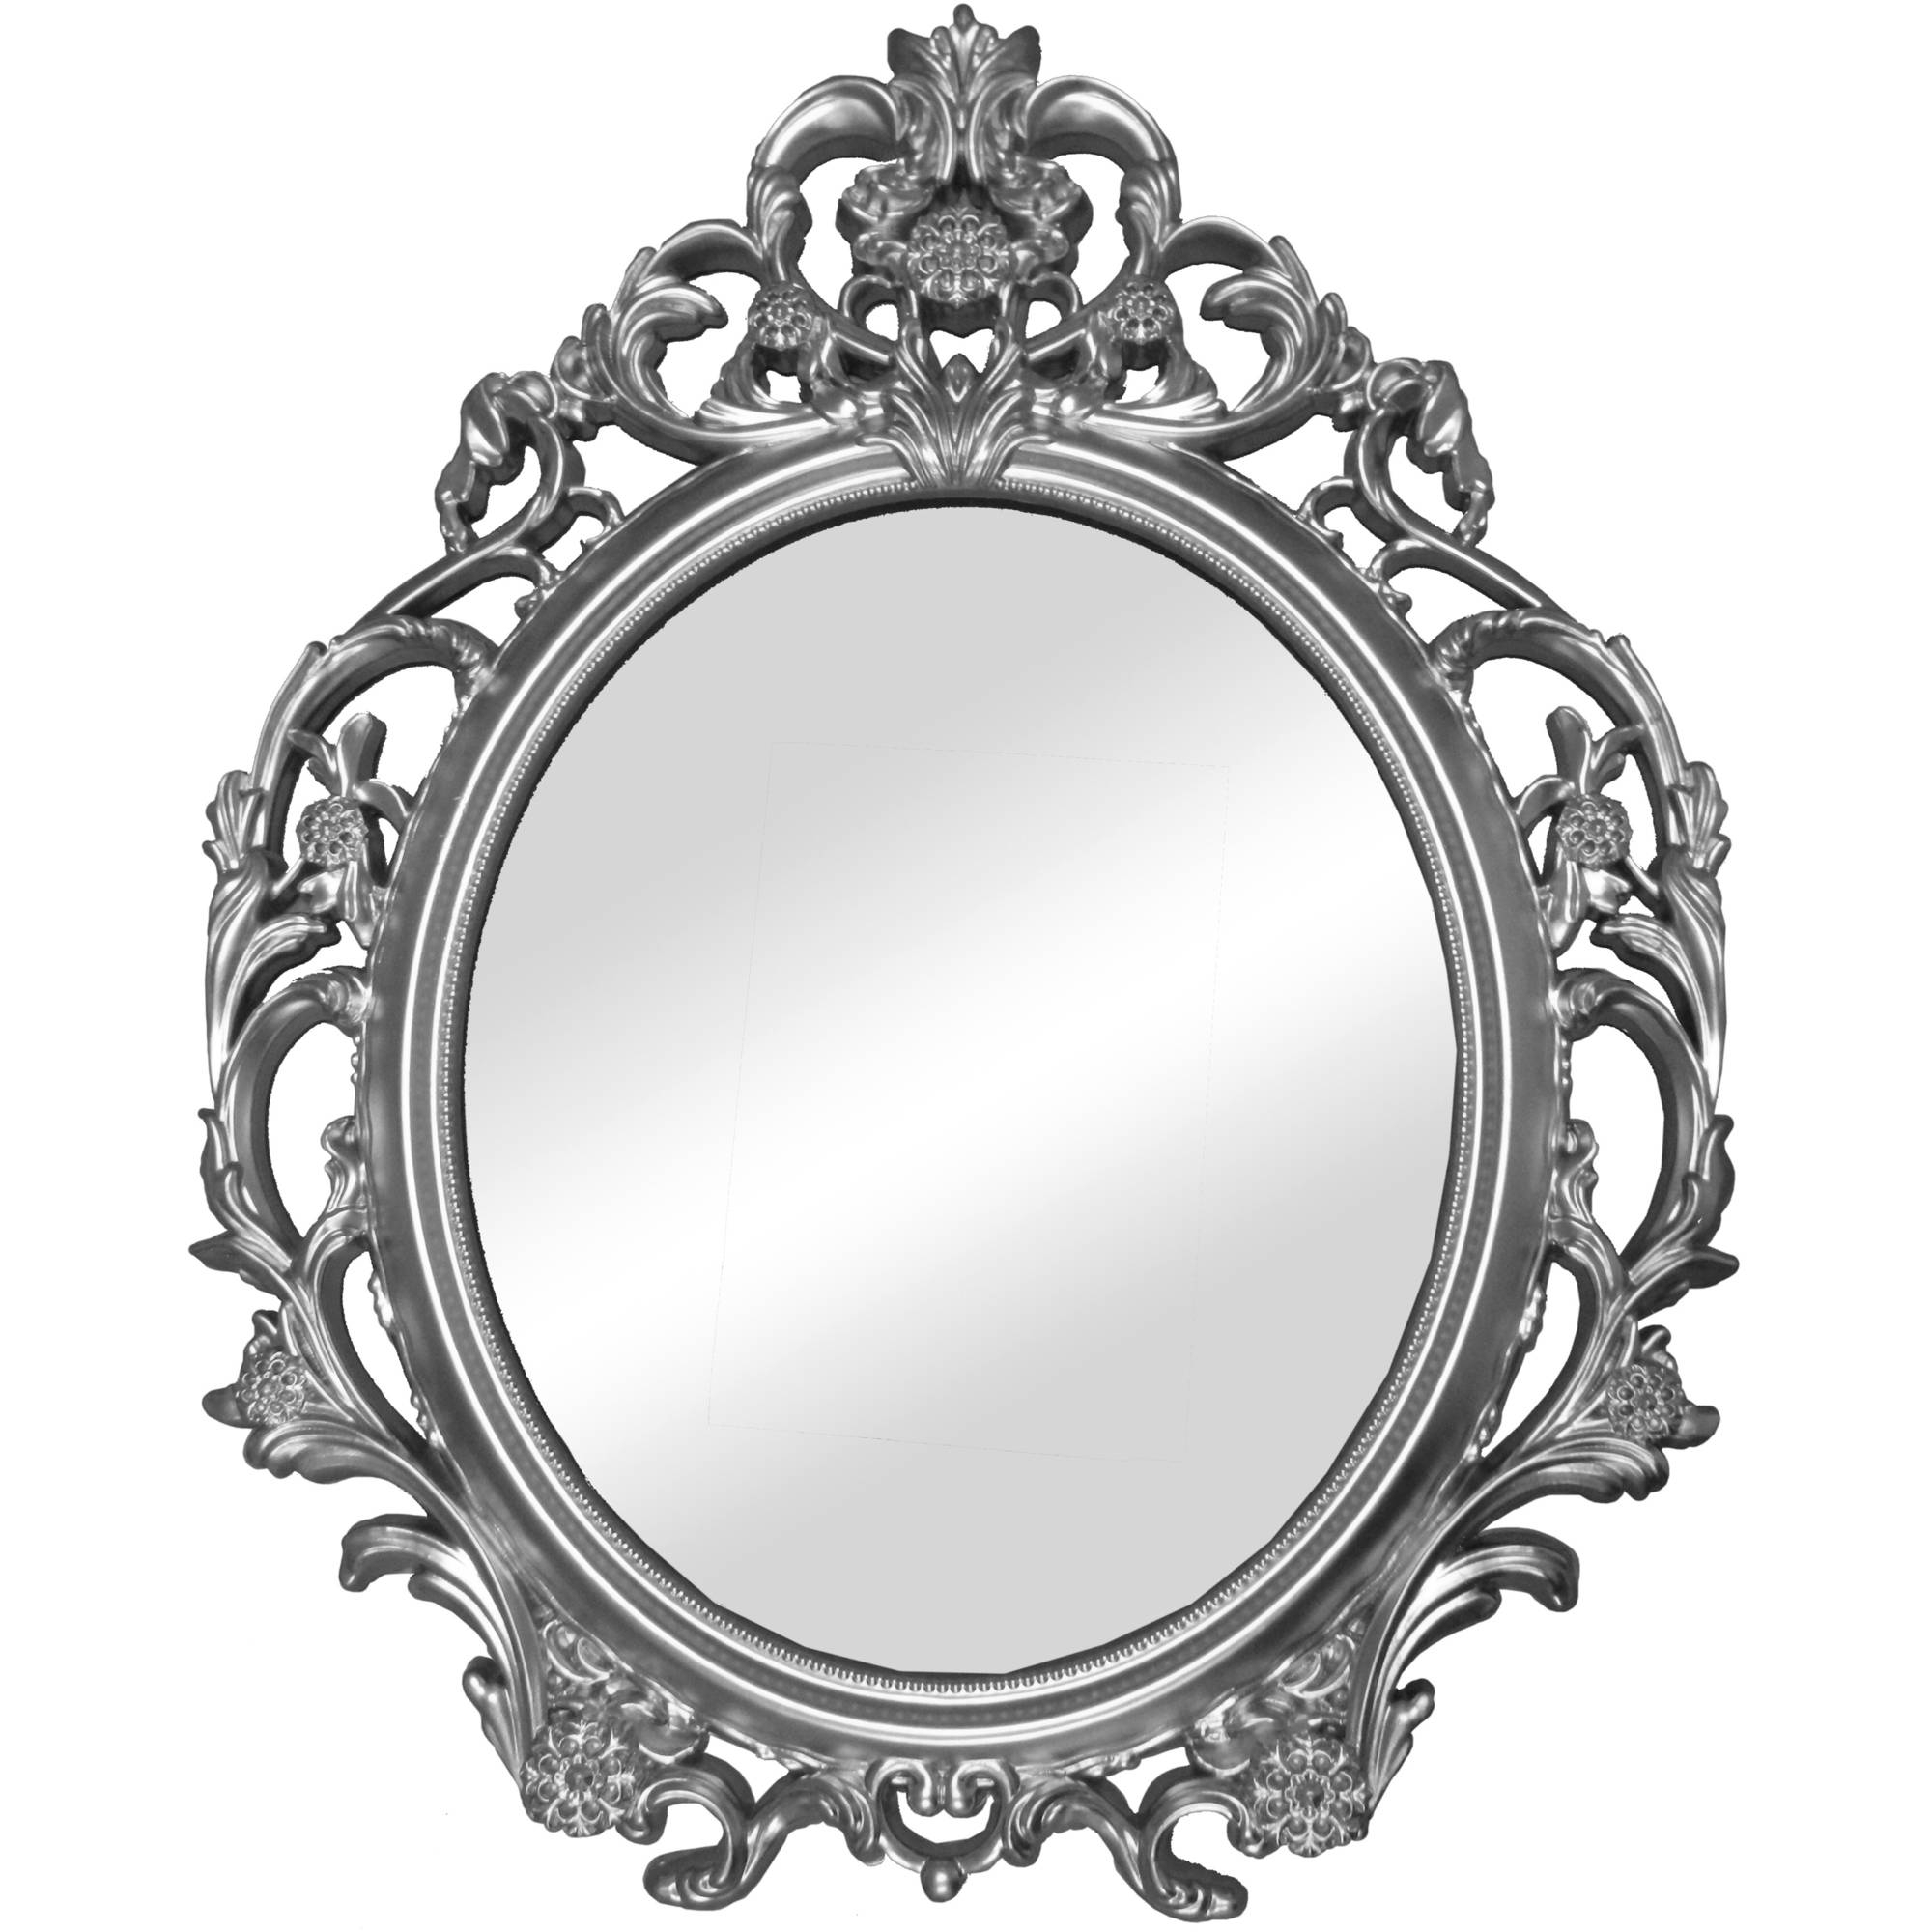 Better Homes & Gardens Ornate Baroque Wall Mirror With Regard To Oval Metallic Accent Mirrors (View 19 of 20)